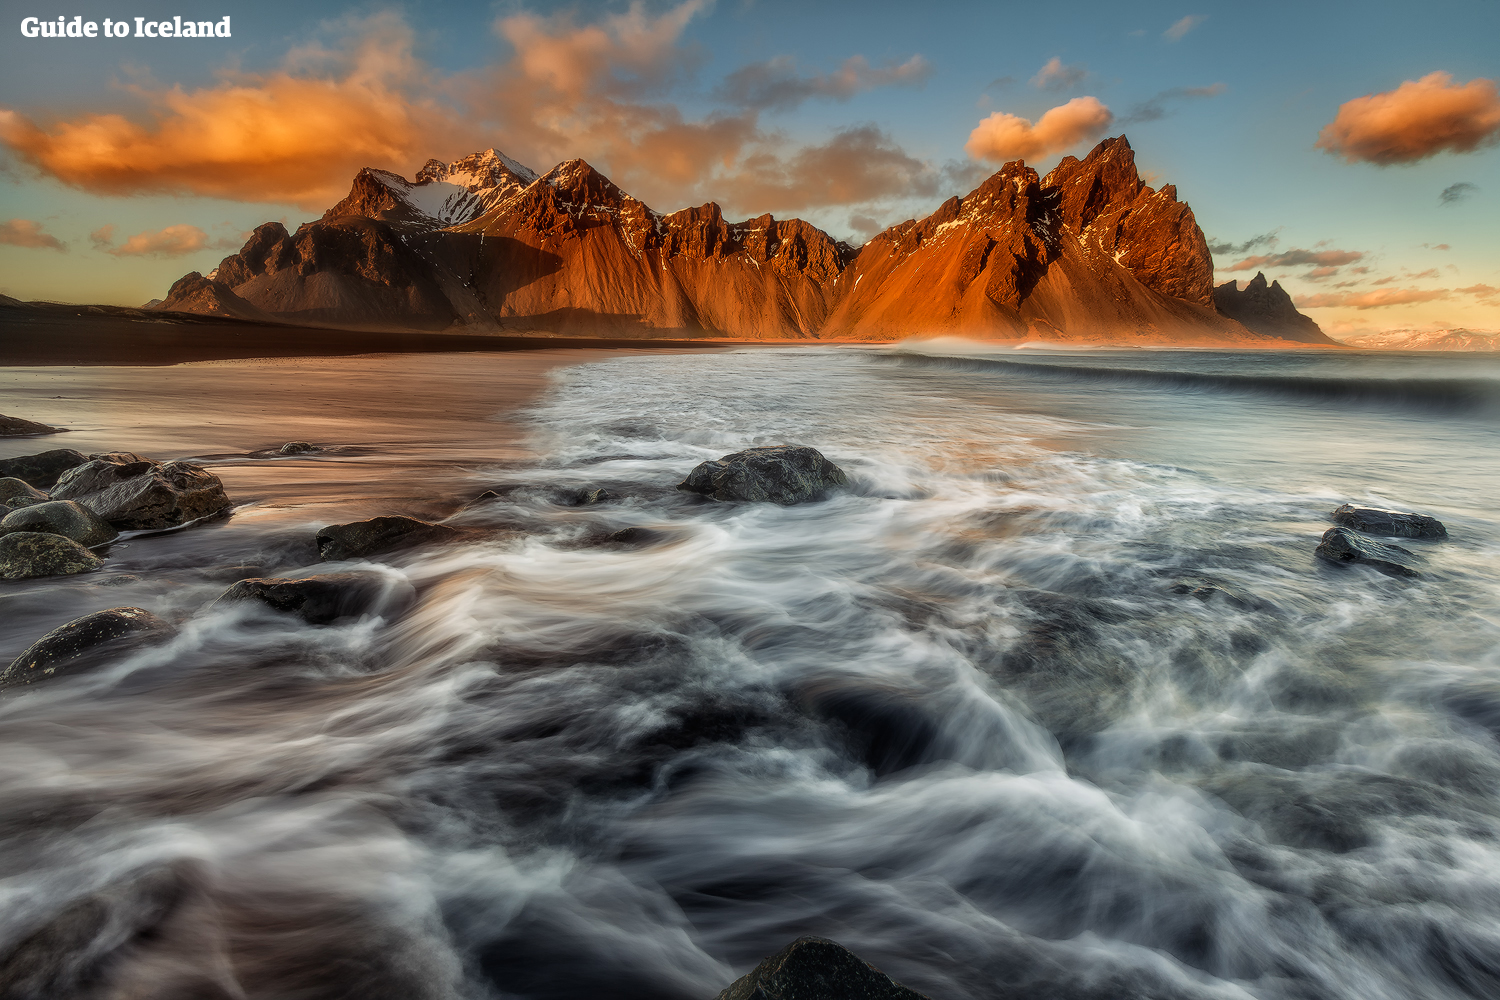 The mesmerising Vestrahorn mountain is a worthy detour outside the town of Höfn.